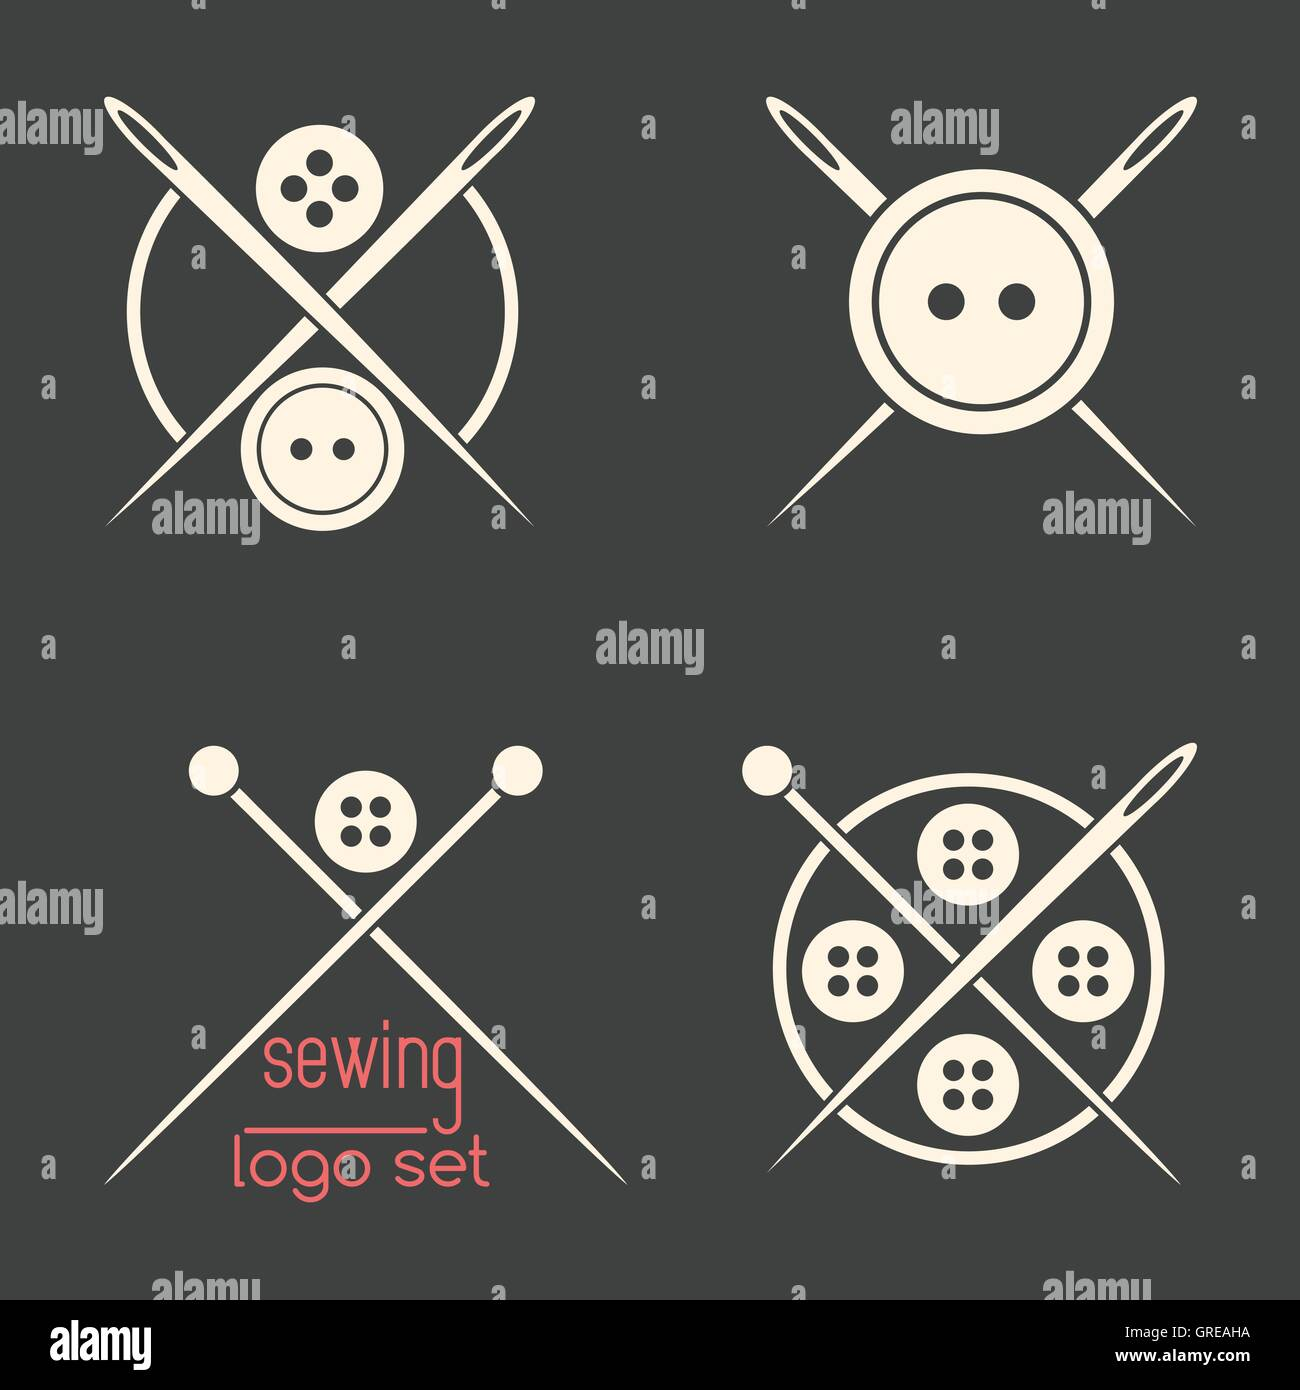 Set of sewing logotypes on dark grey background - Stock Vector